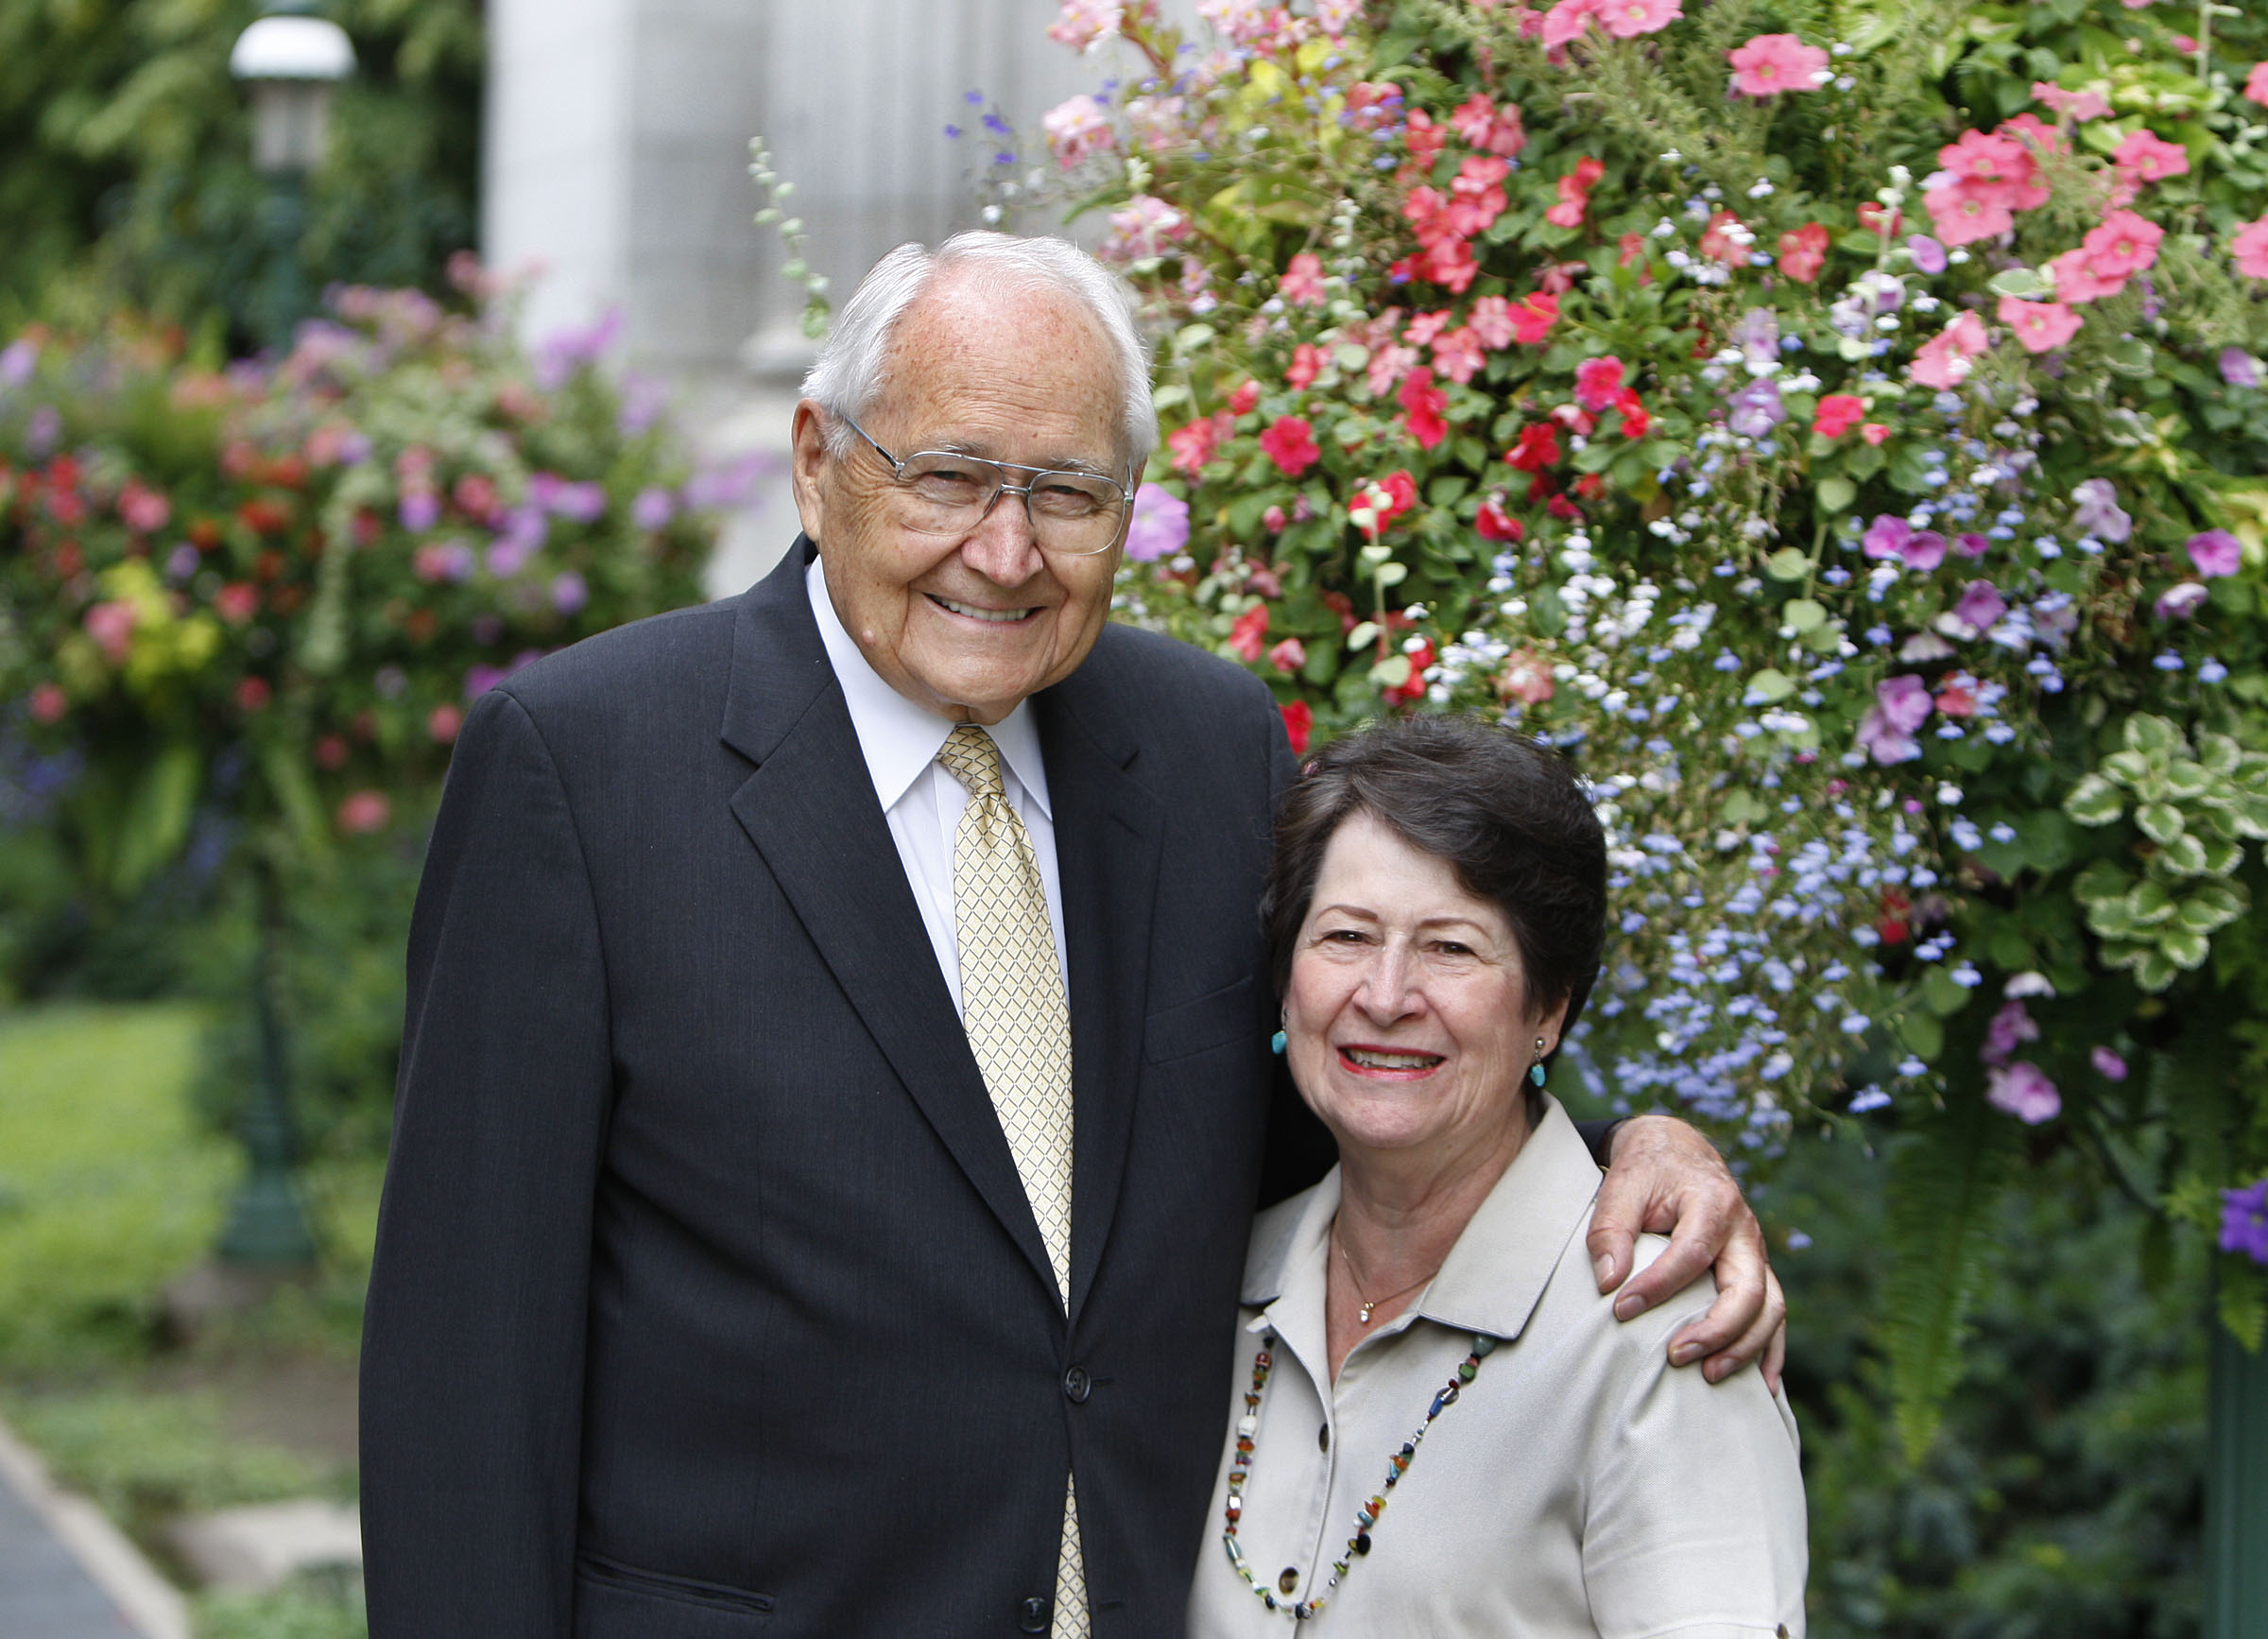 Elder L. Tom Perry and Sister Barbara Perry pause for a photo in 2012 in Salt Lake City, Utah.